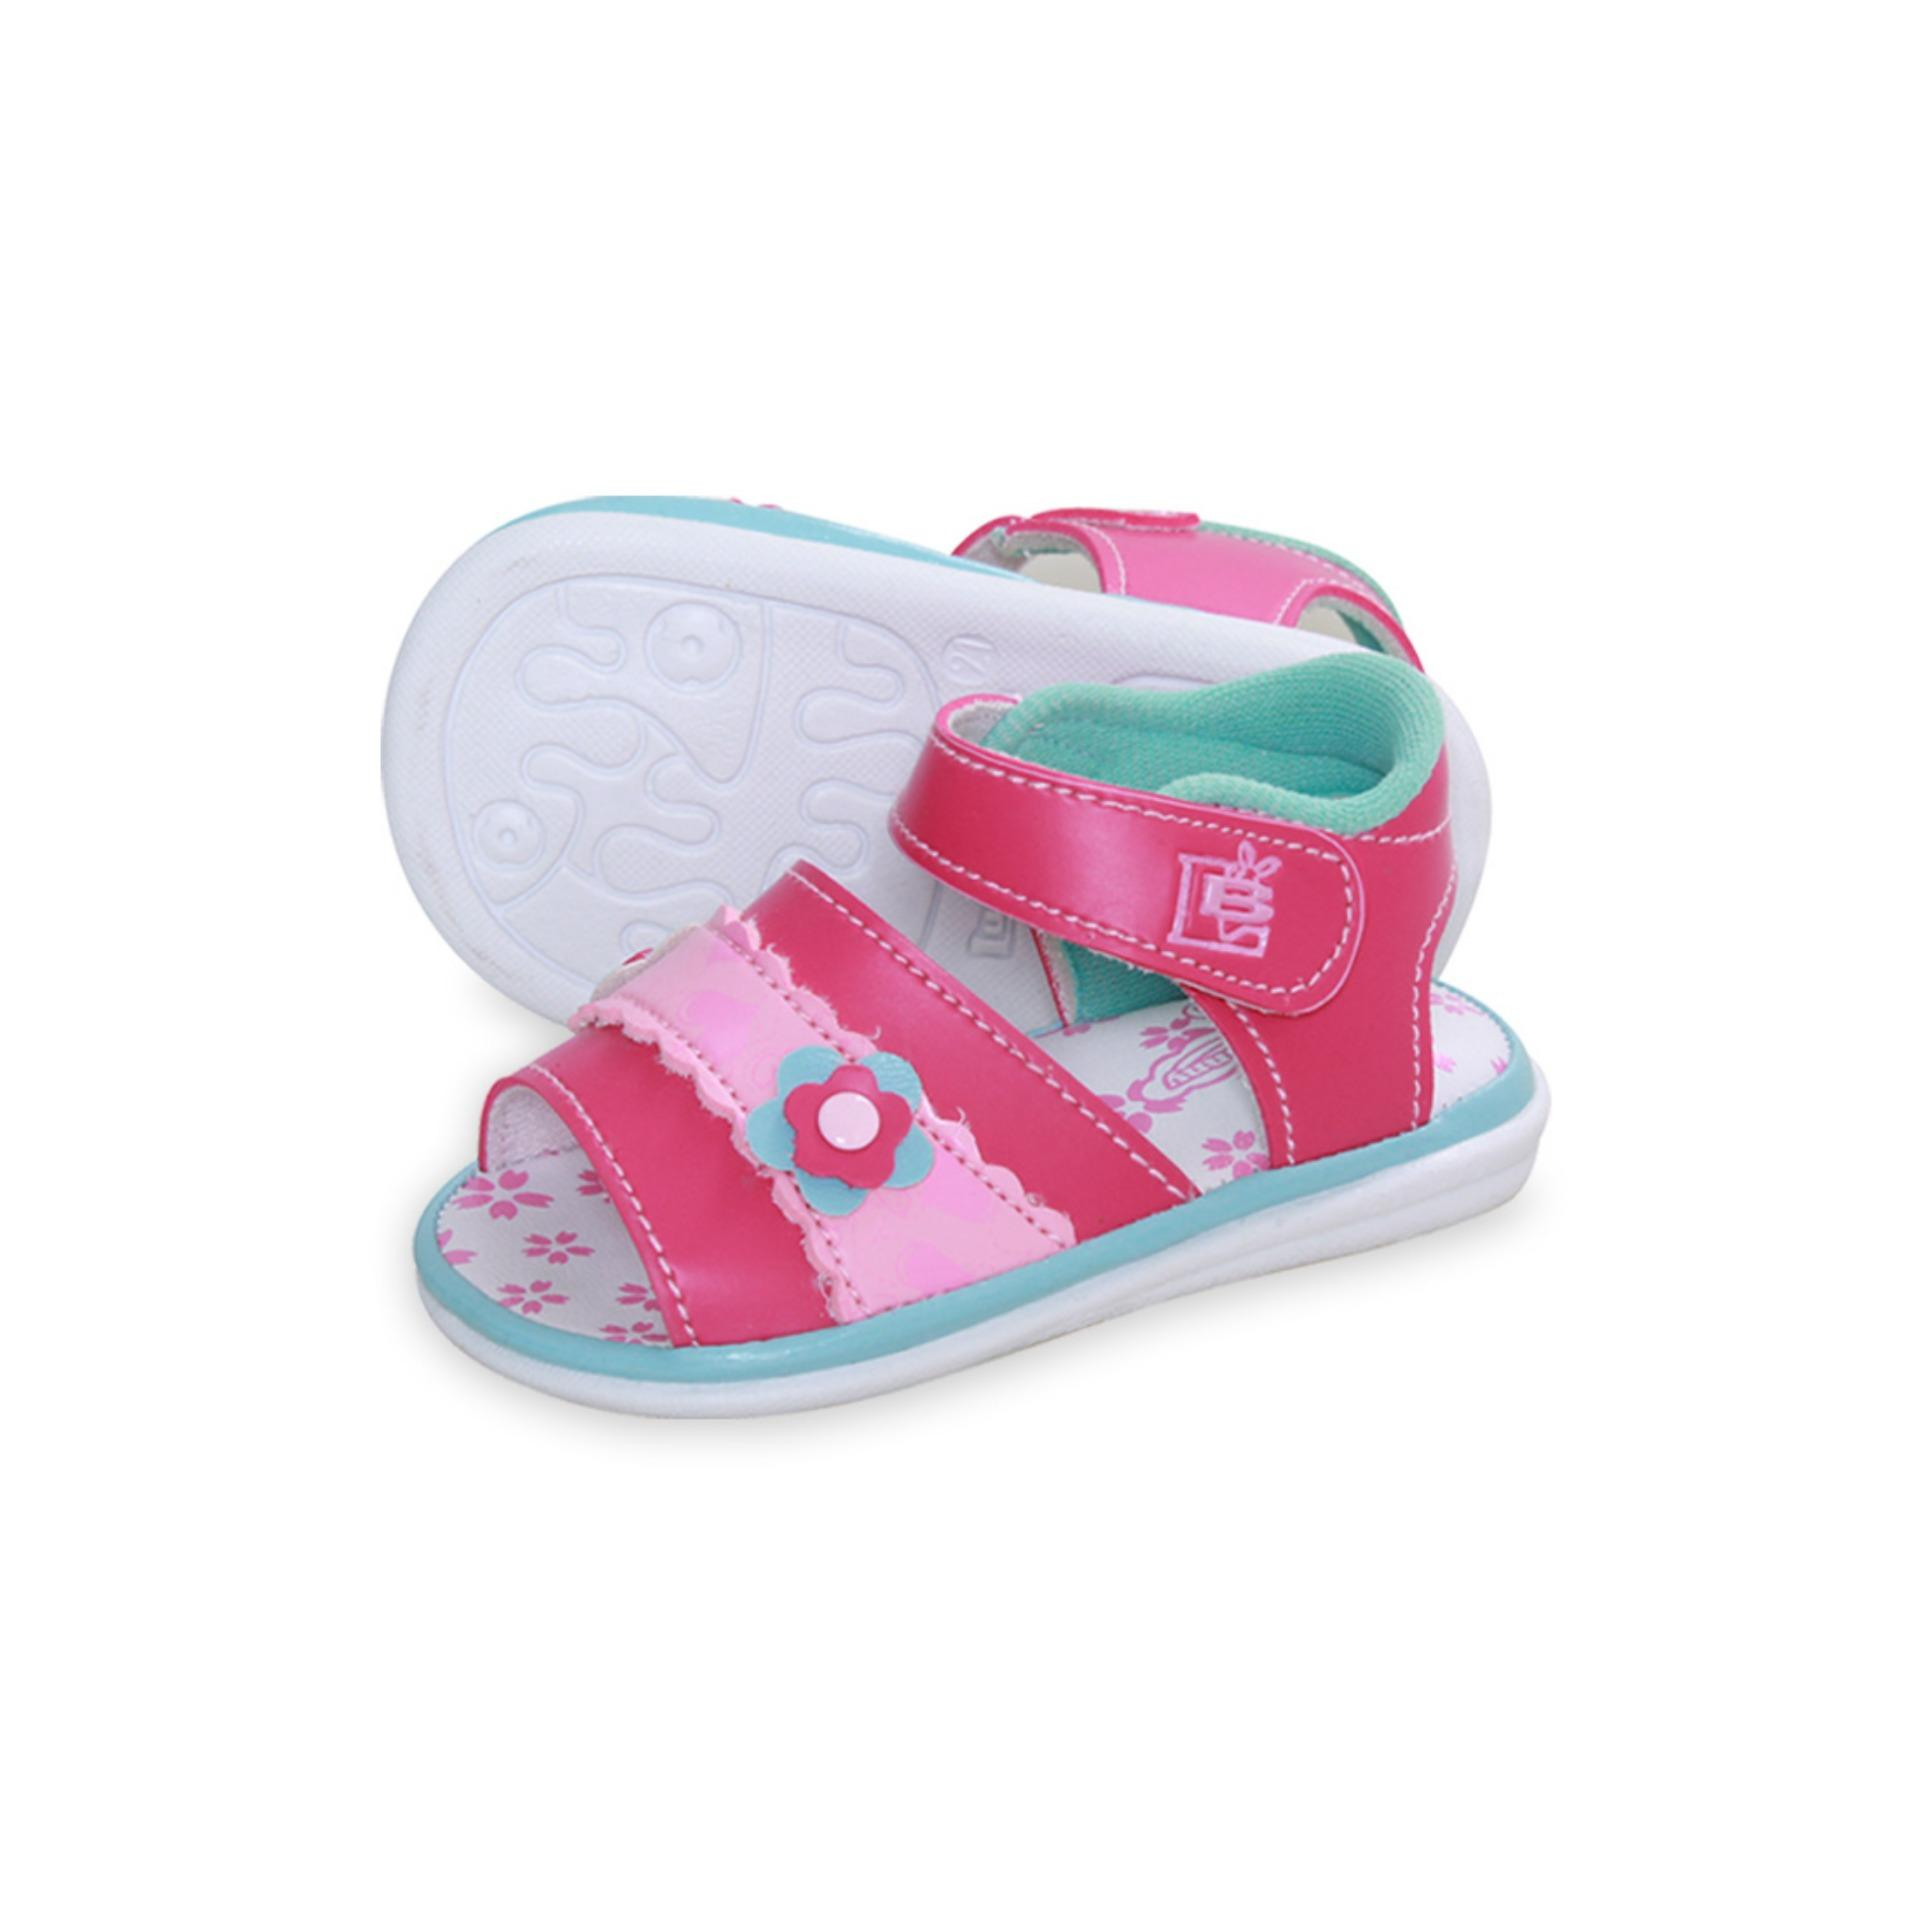 Lusty Bunny Baby Shoes Sepatu sandal bayi motive Flower Love